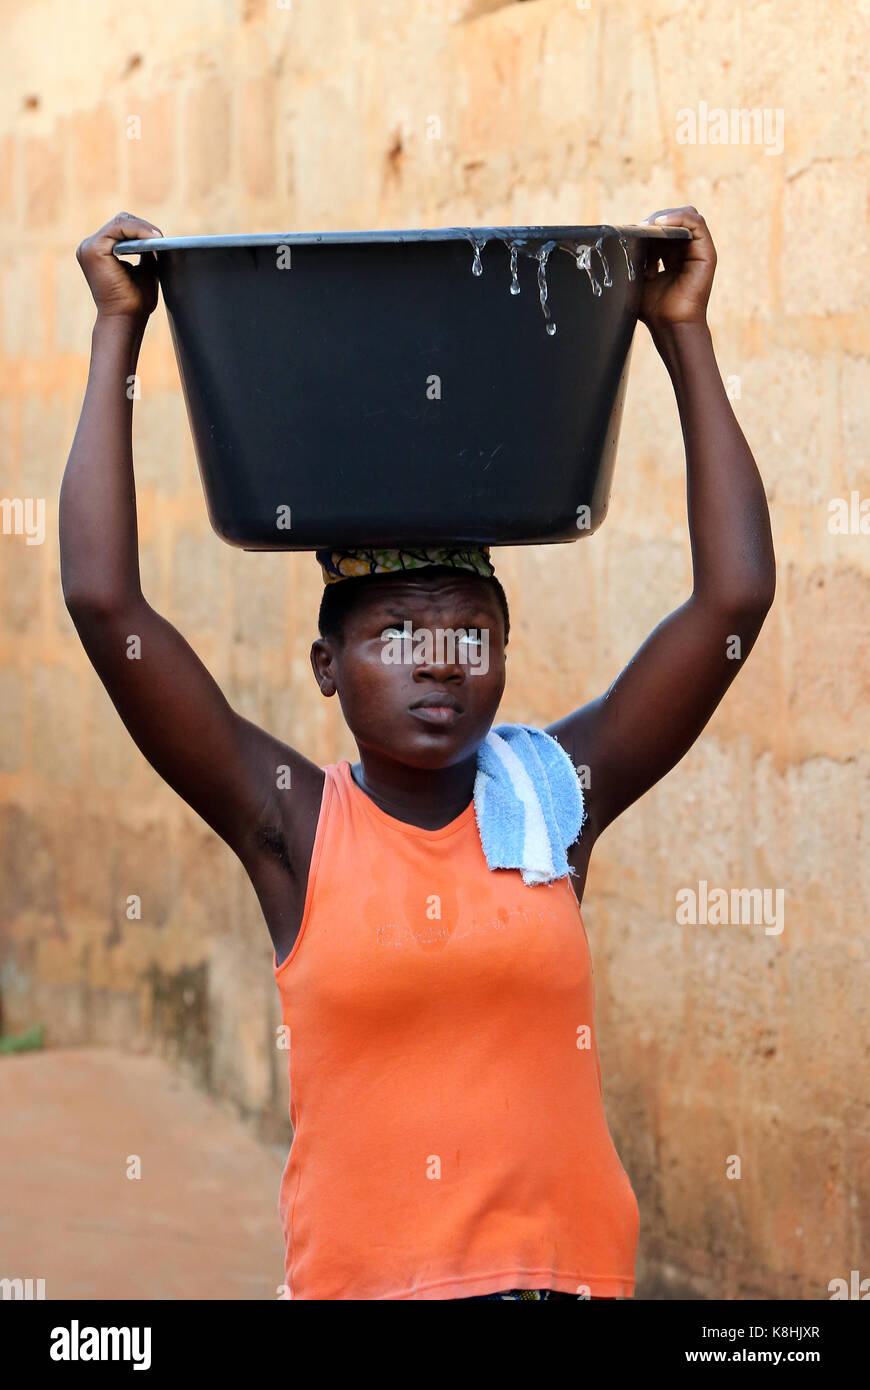 African village life. water chore. african girl carrying a basin of water on head. togoville. togo. - Stock Image